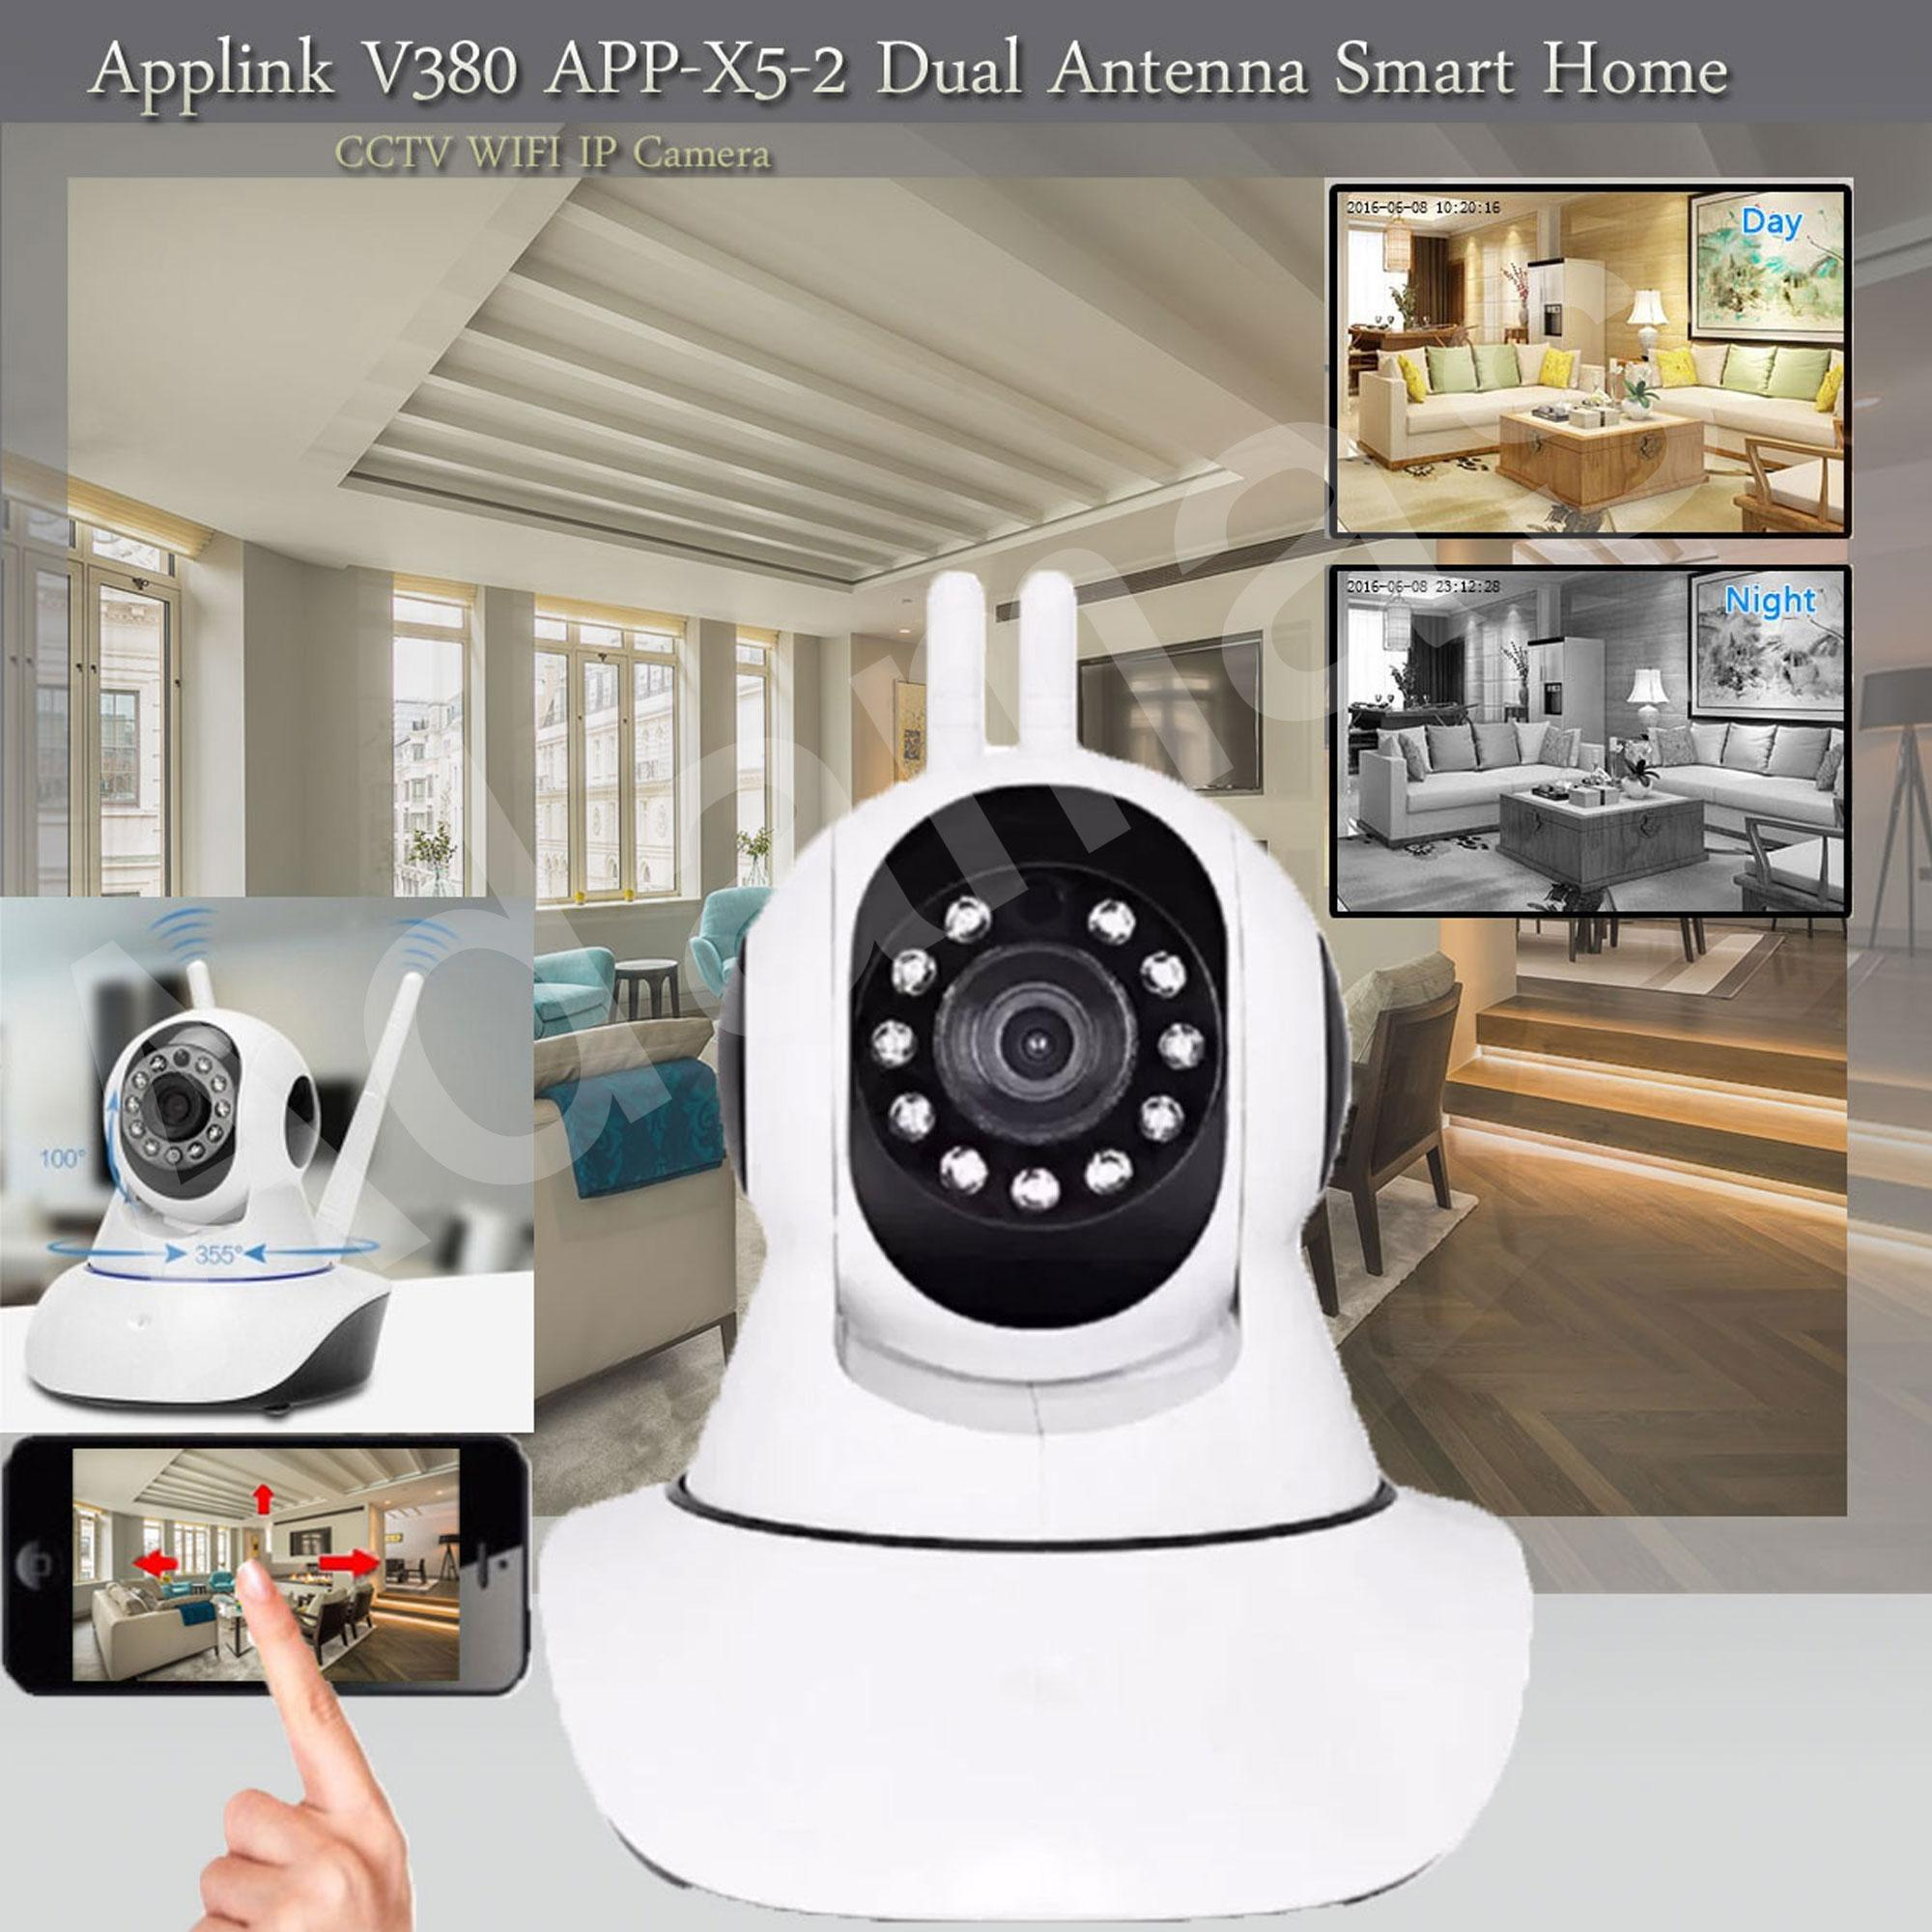 CCTV WIFI IP Camera YY2P APP-X5-2 Dual Antenna Smart Home CCTV ( White)